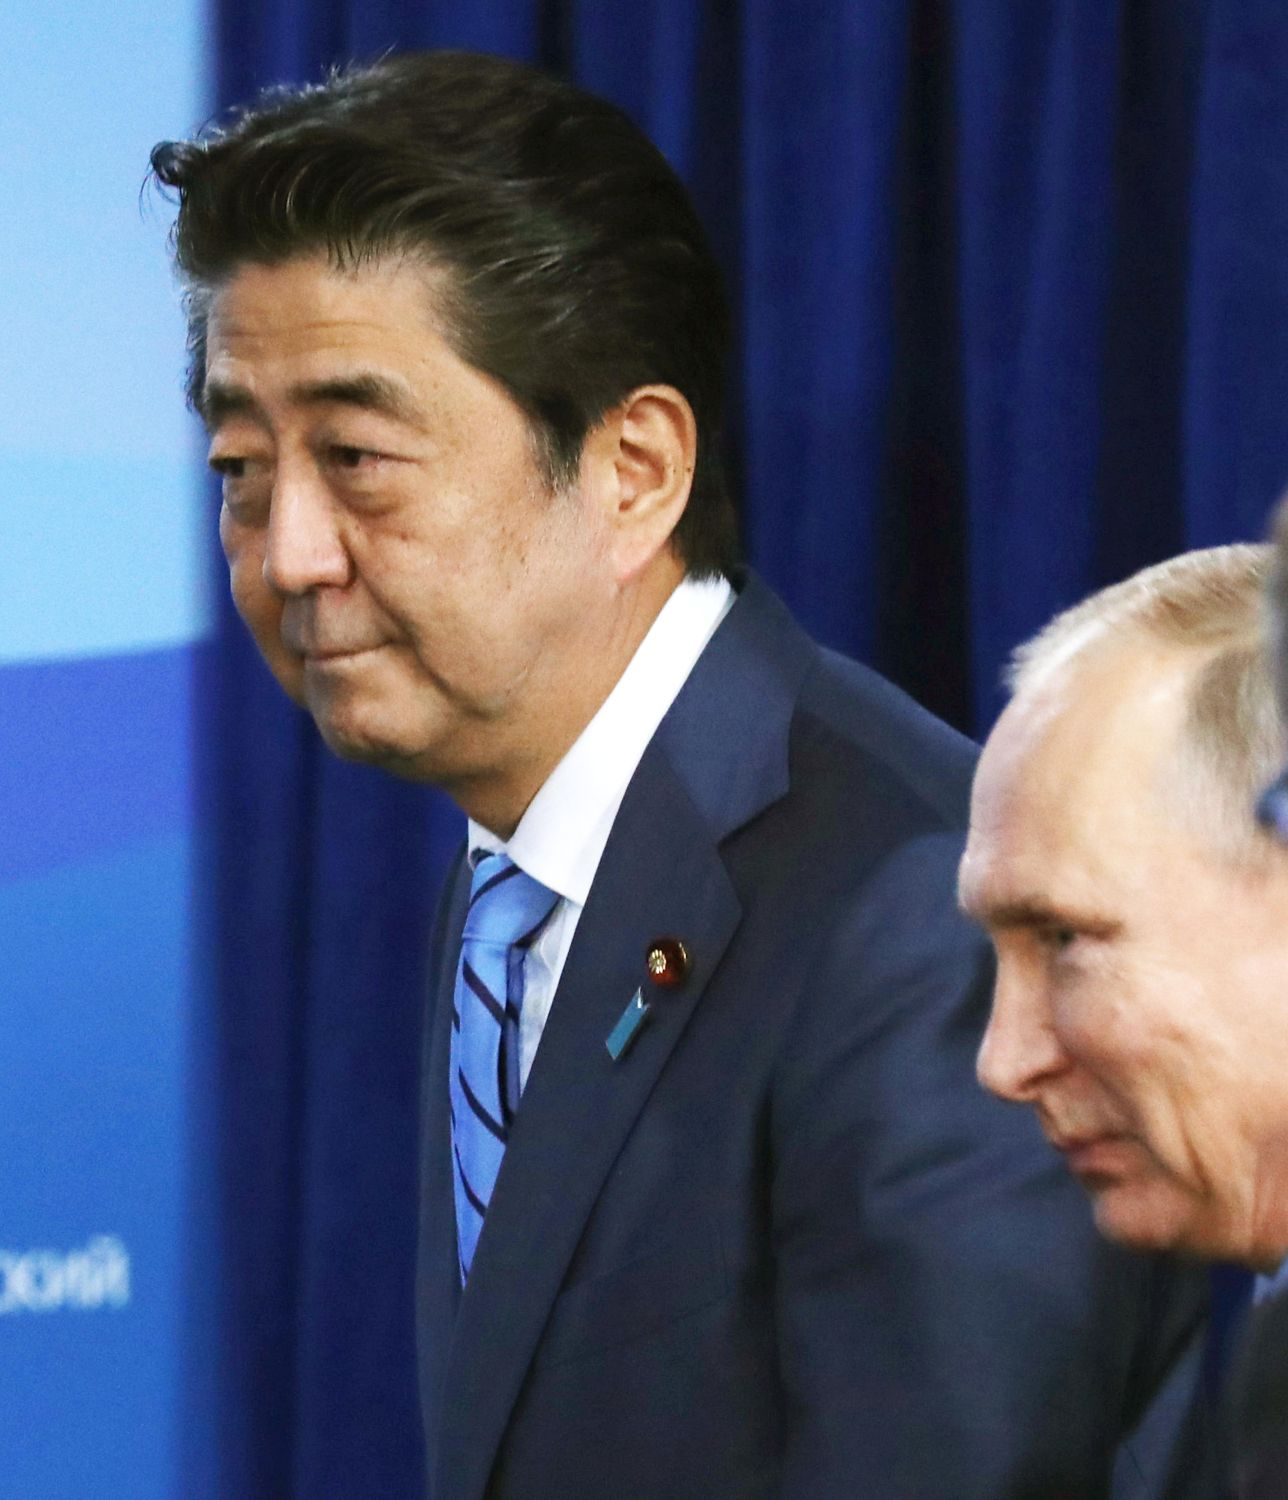 [EDITORIAL] Without Russia Reverting Northern Territories, Japan Must Reject 'Peace Pact'